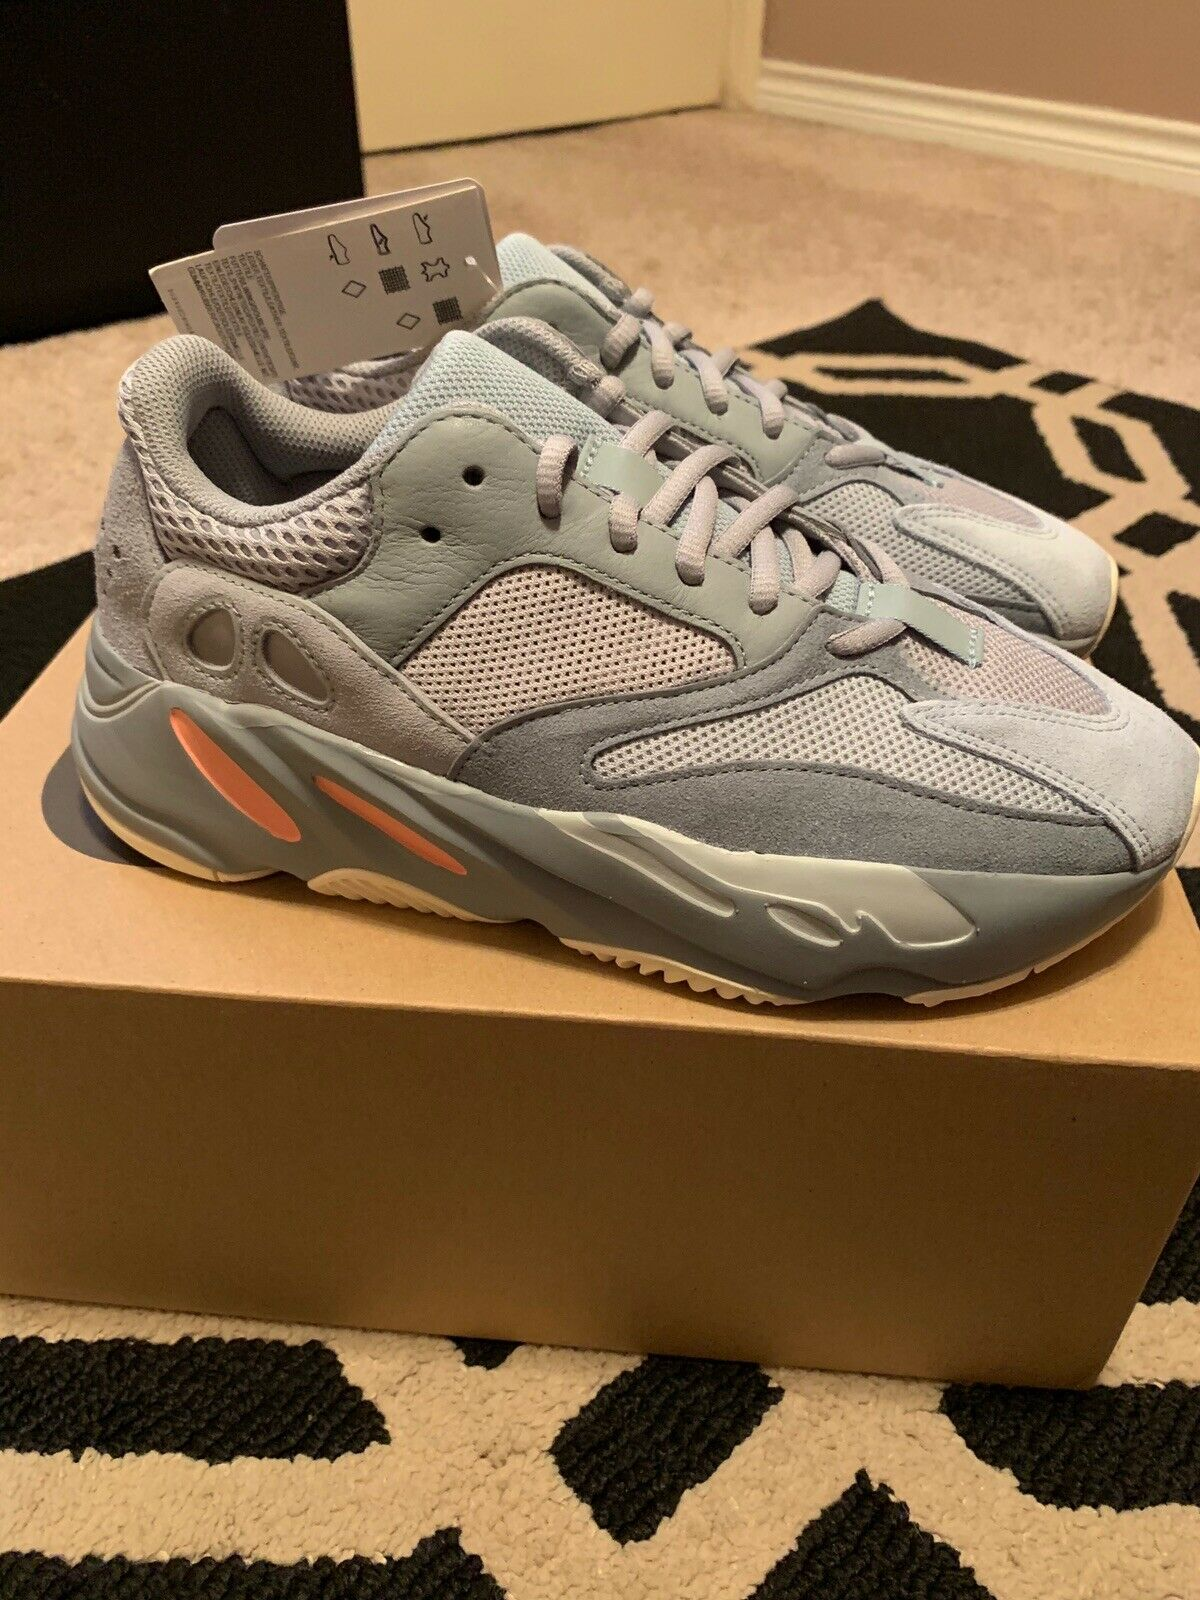 NEW ADIDAS YEEZY BOOST 700 'Inertia' Size 7 CONFIRMED ORDER  100% AUTHENTIC.